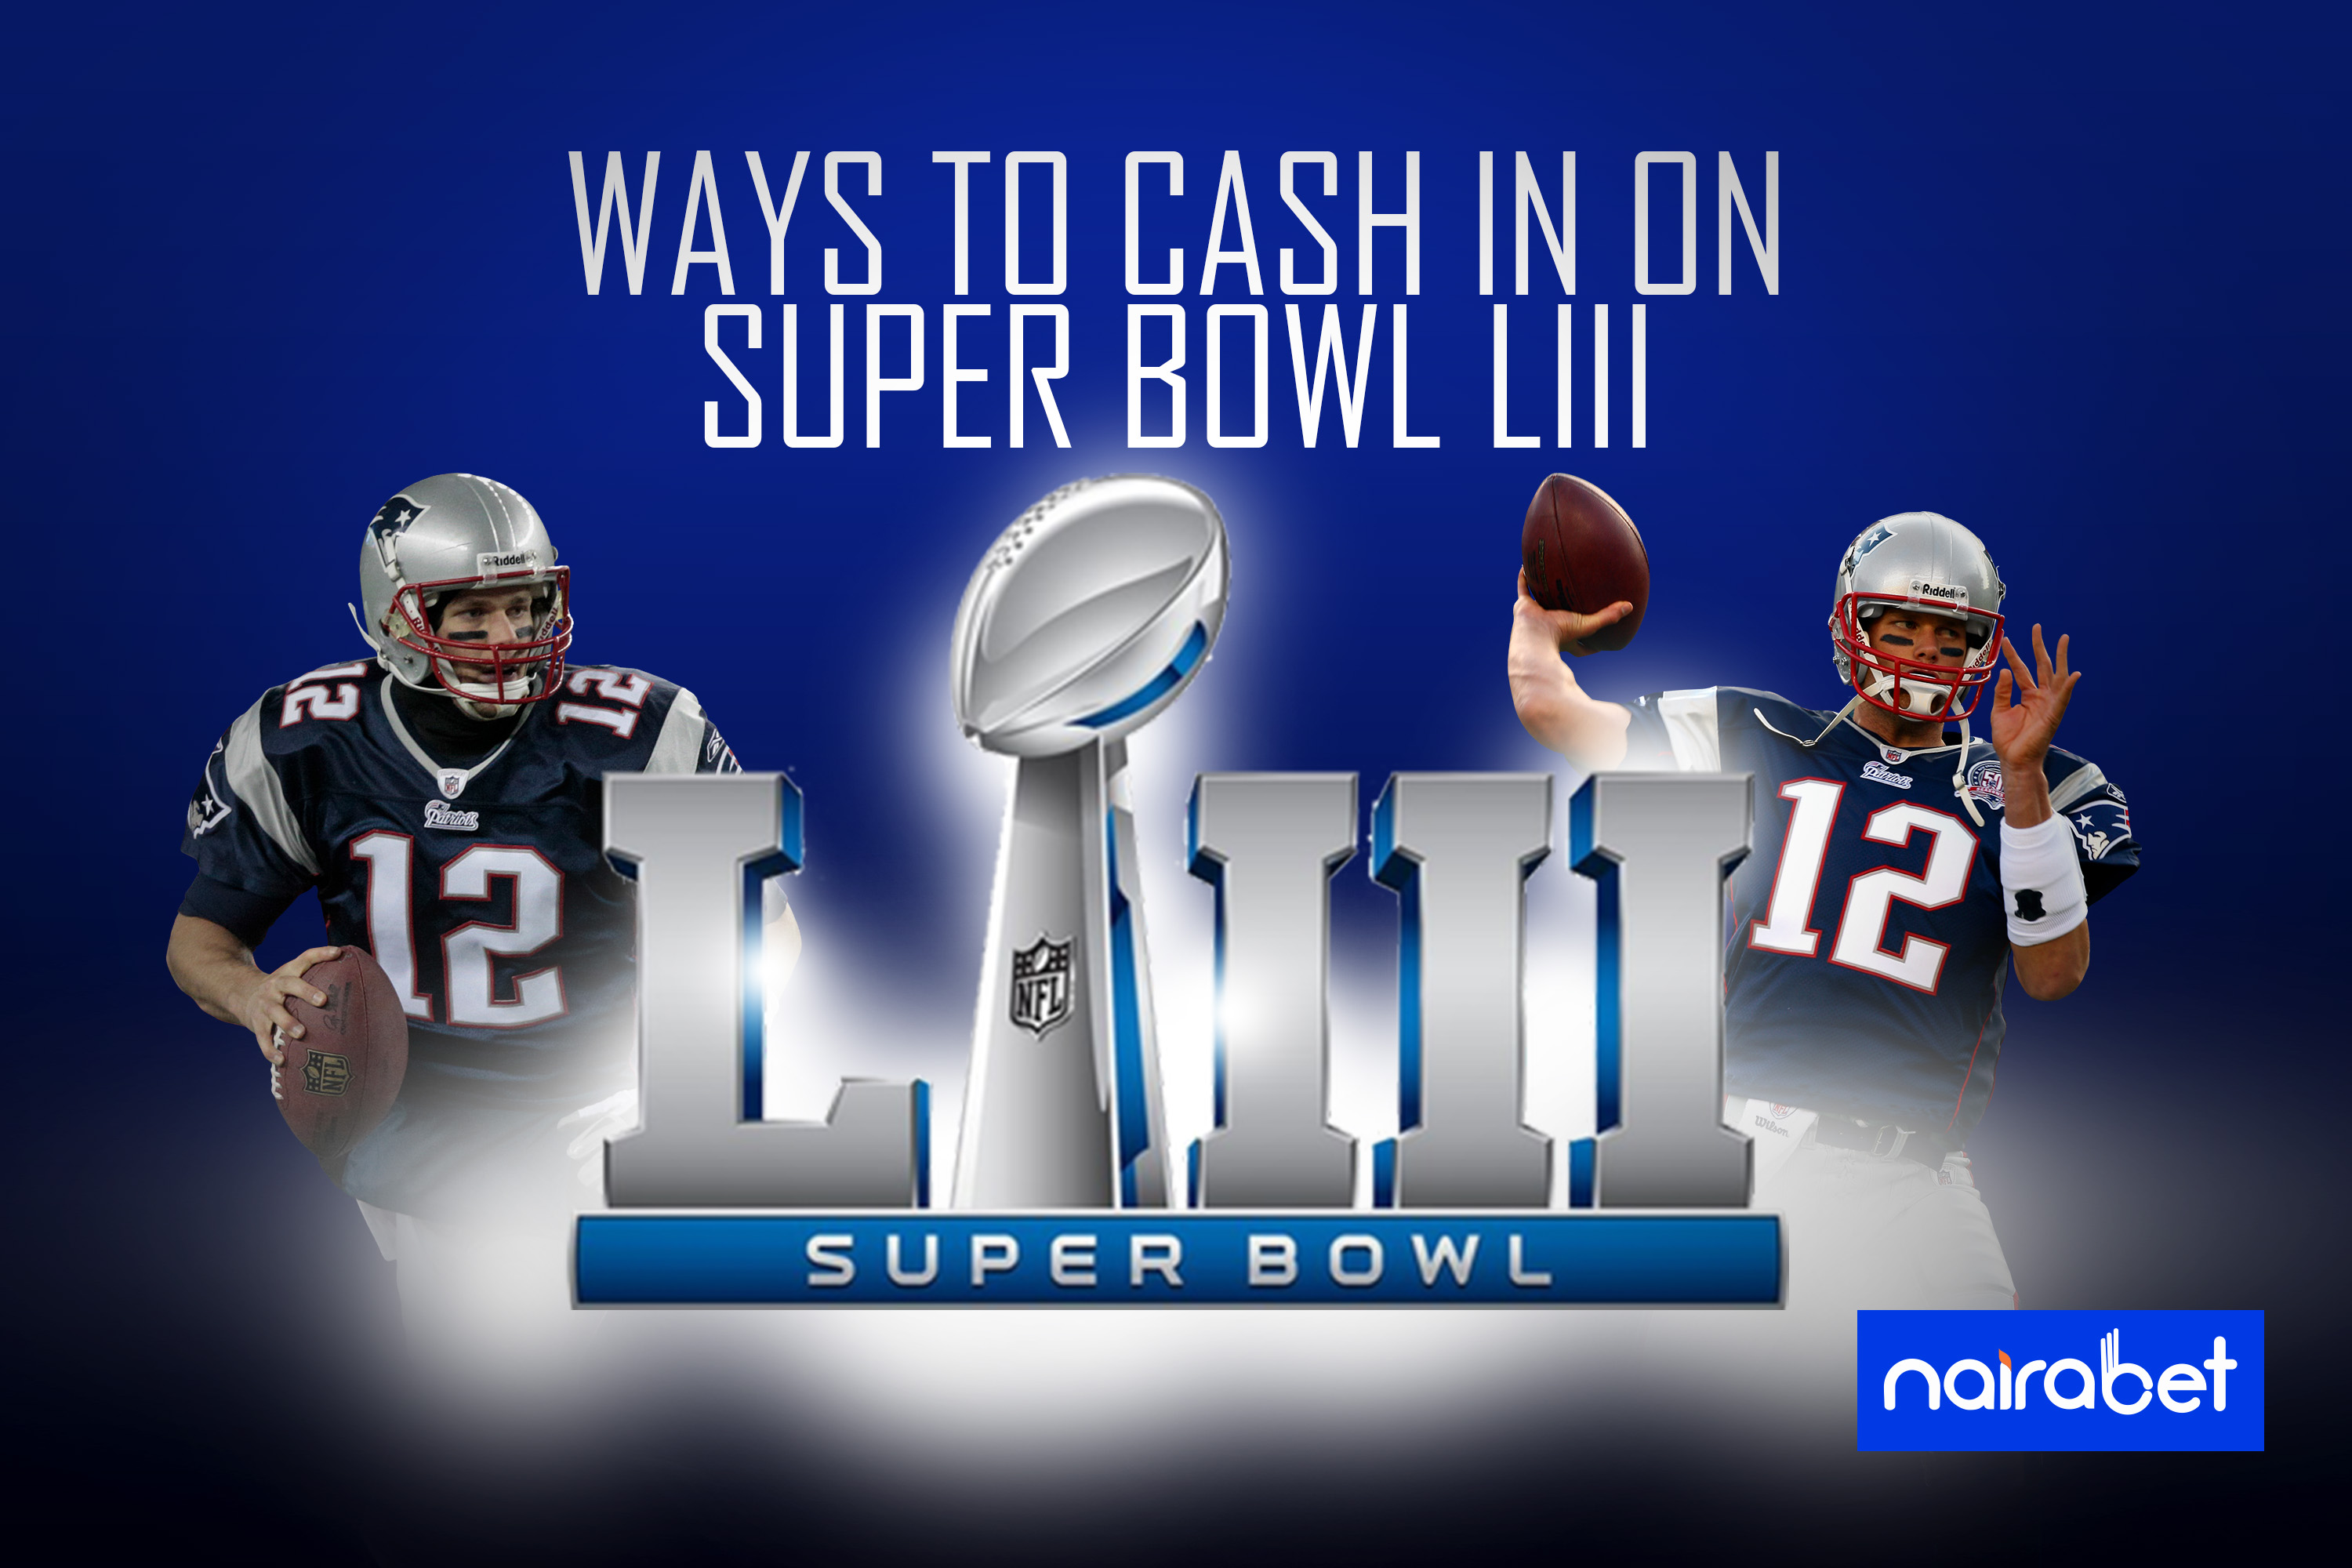 cash in on super bowl